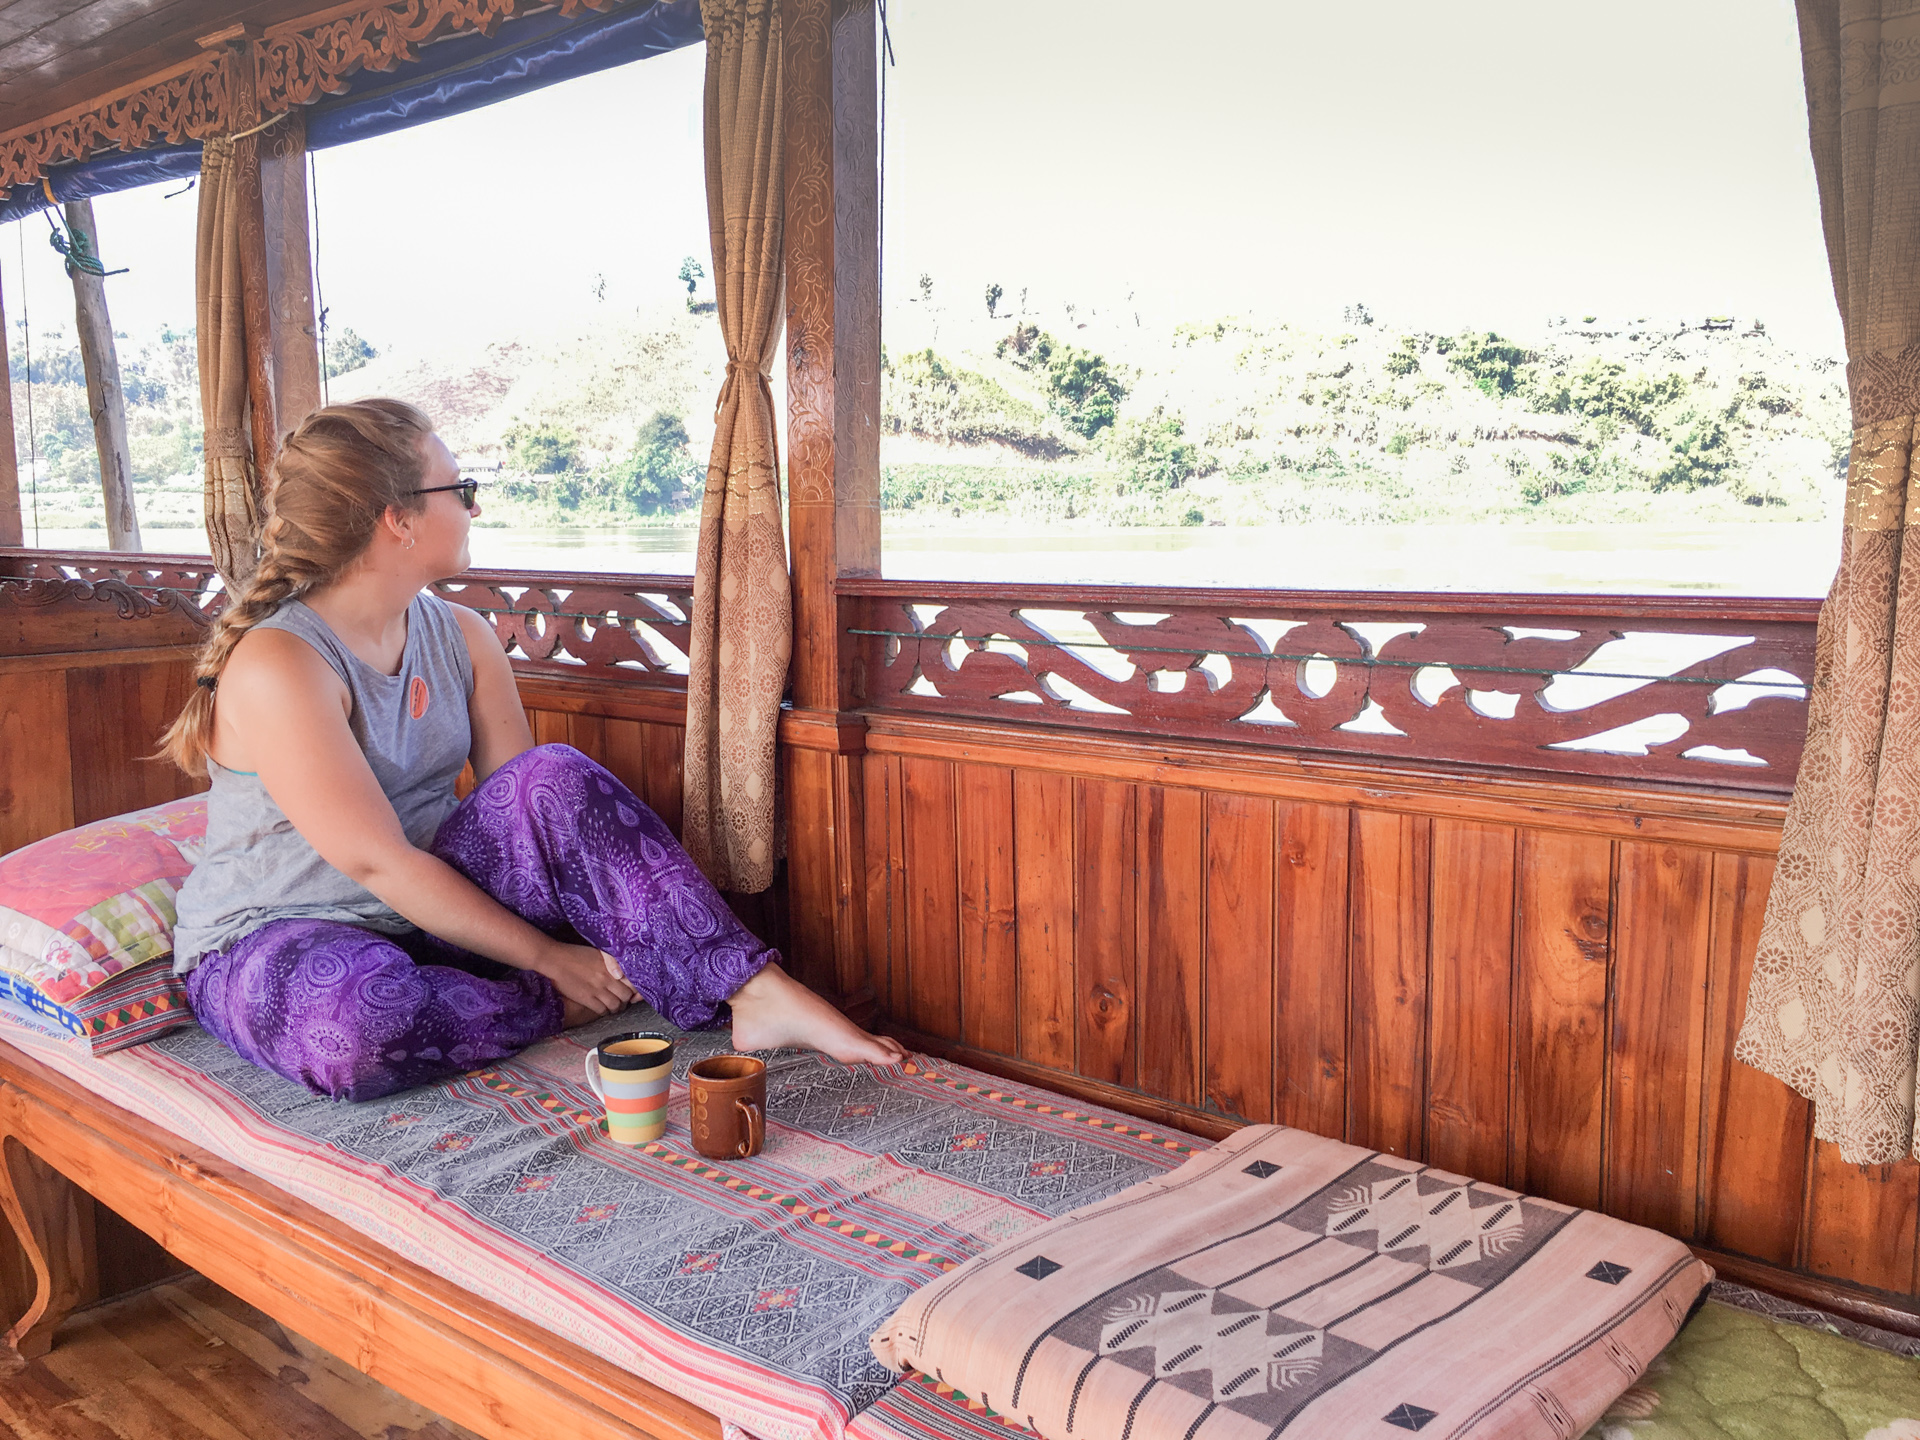 Alis on Mekong River Cruise boat